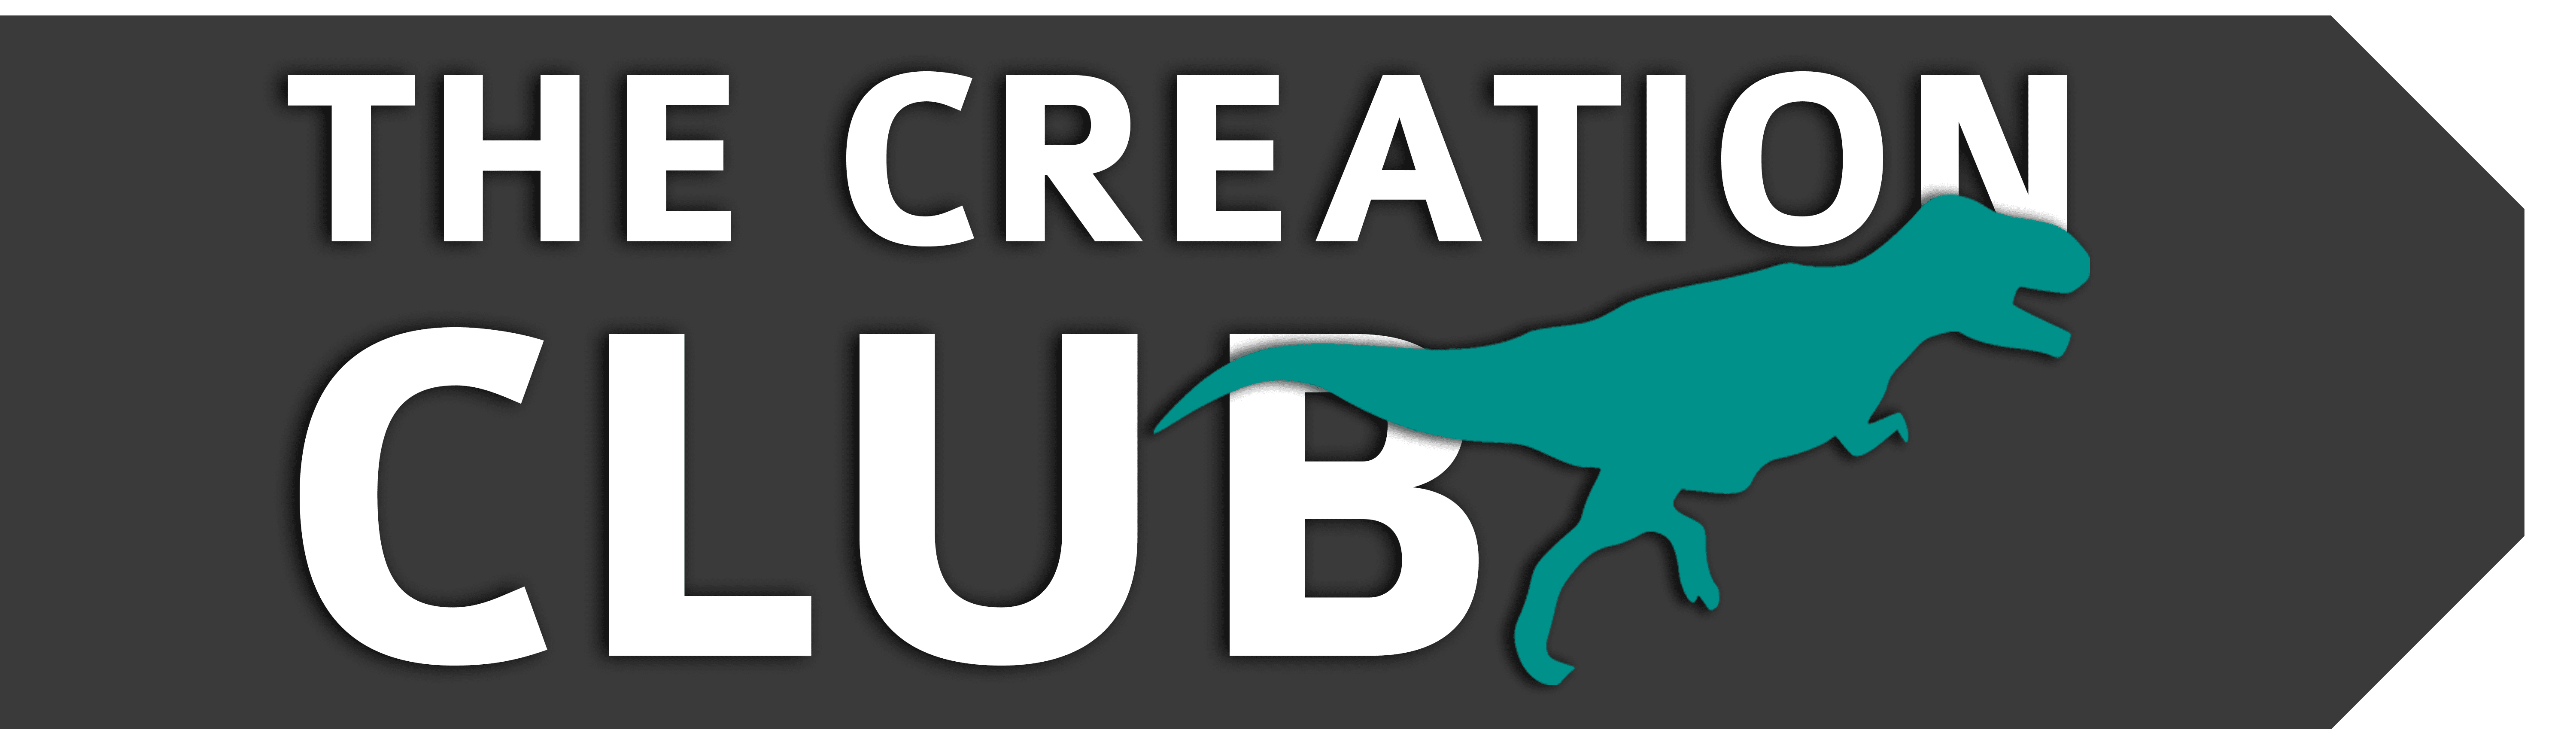 The Creation Club | A Place for Biblical Creationists to Share and Learn